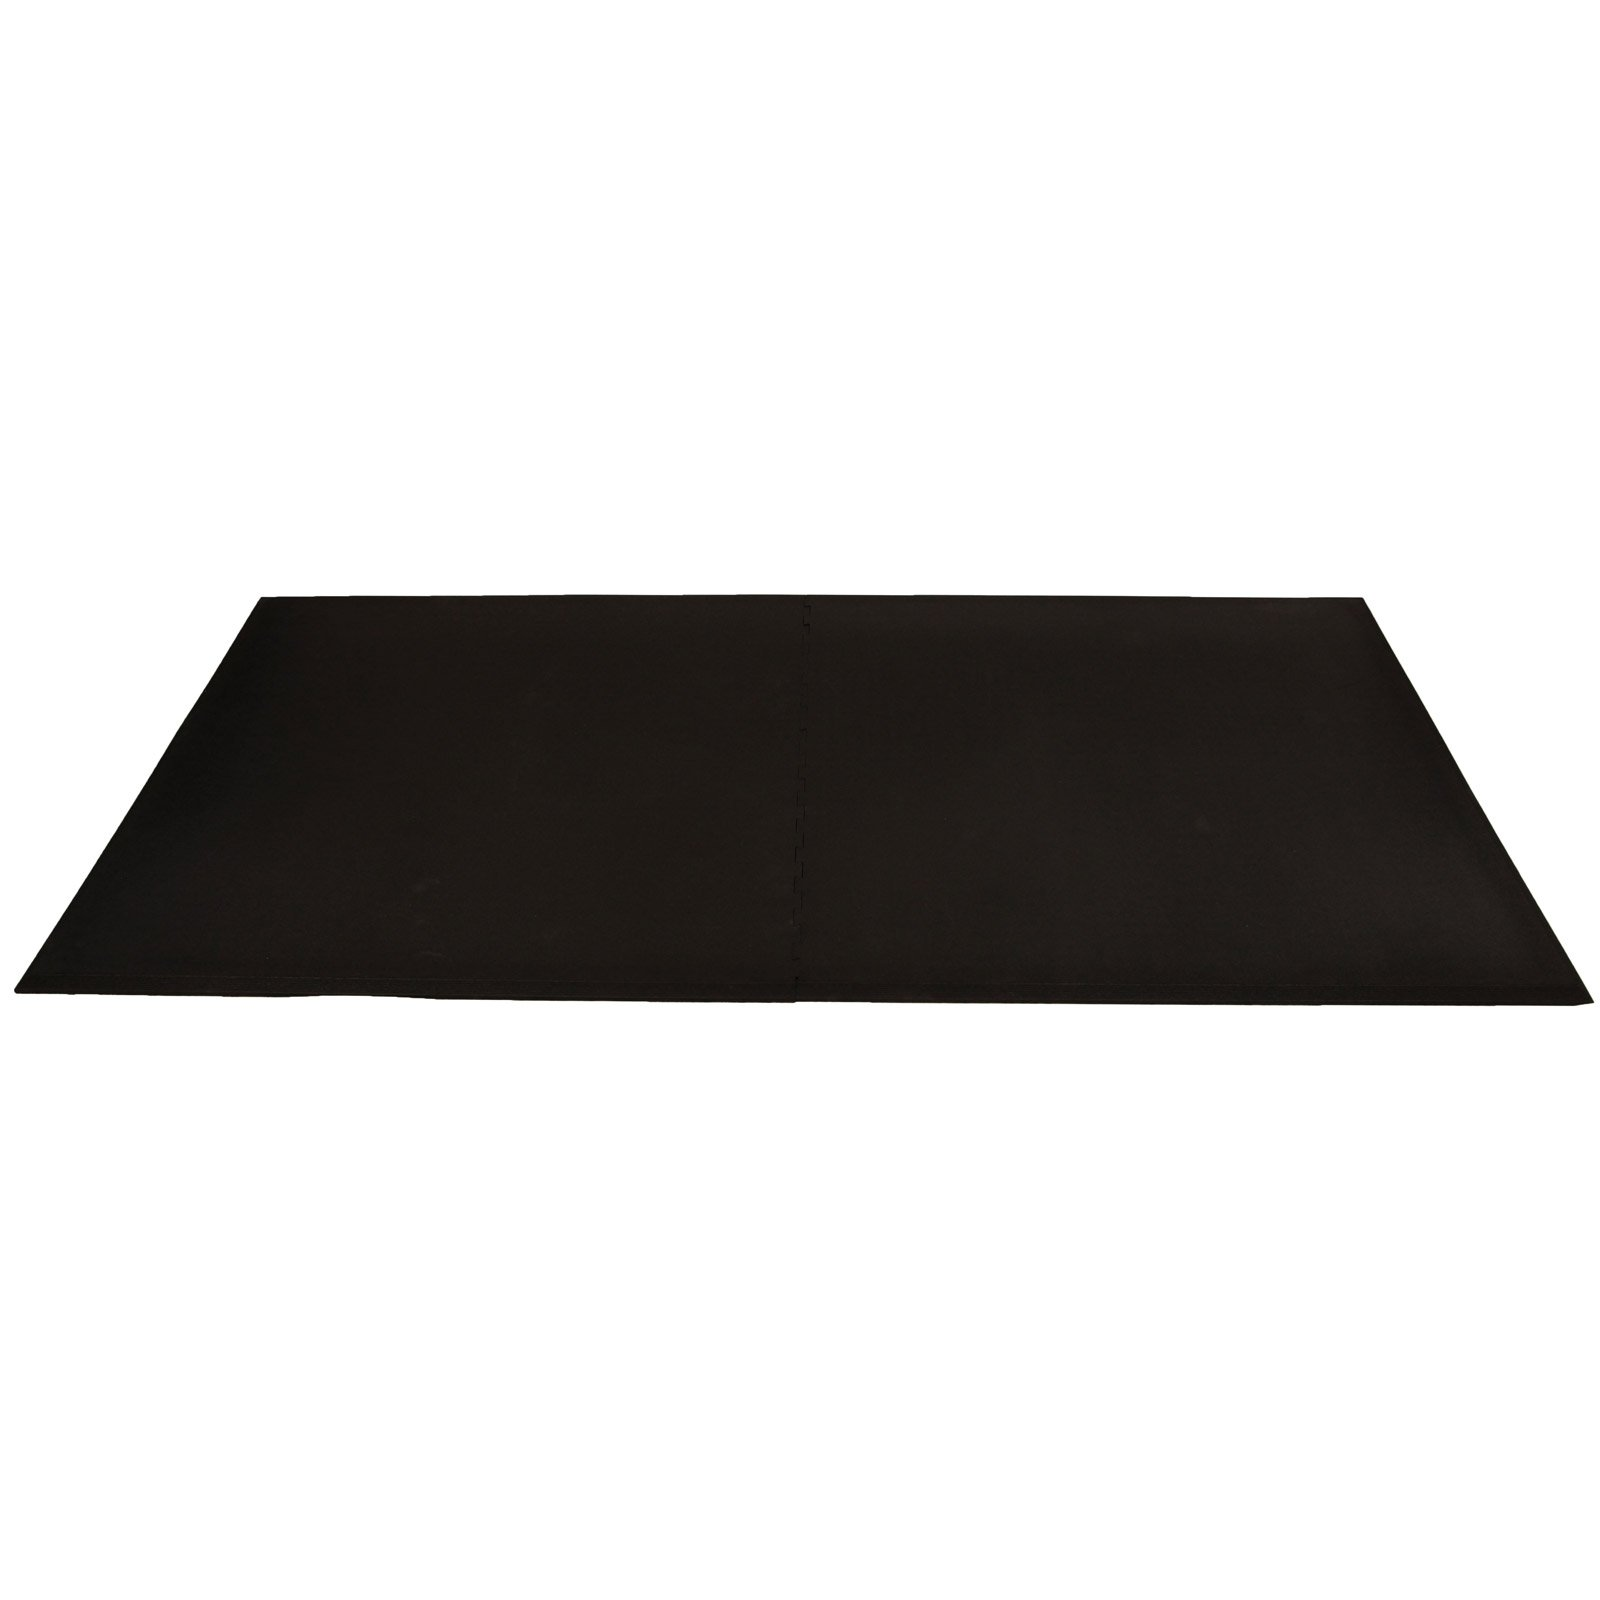 IncStores 3/4in Shock Mats Interlocking Heavy Duty High Impact Weight Room Gym Flooring by IncStores (Image #2)